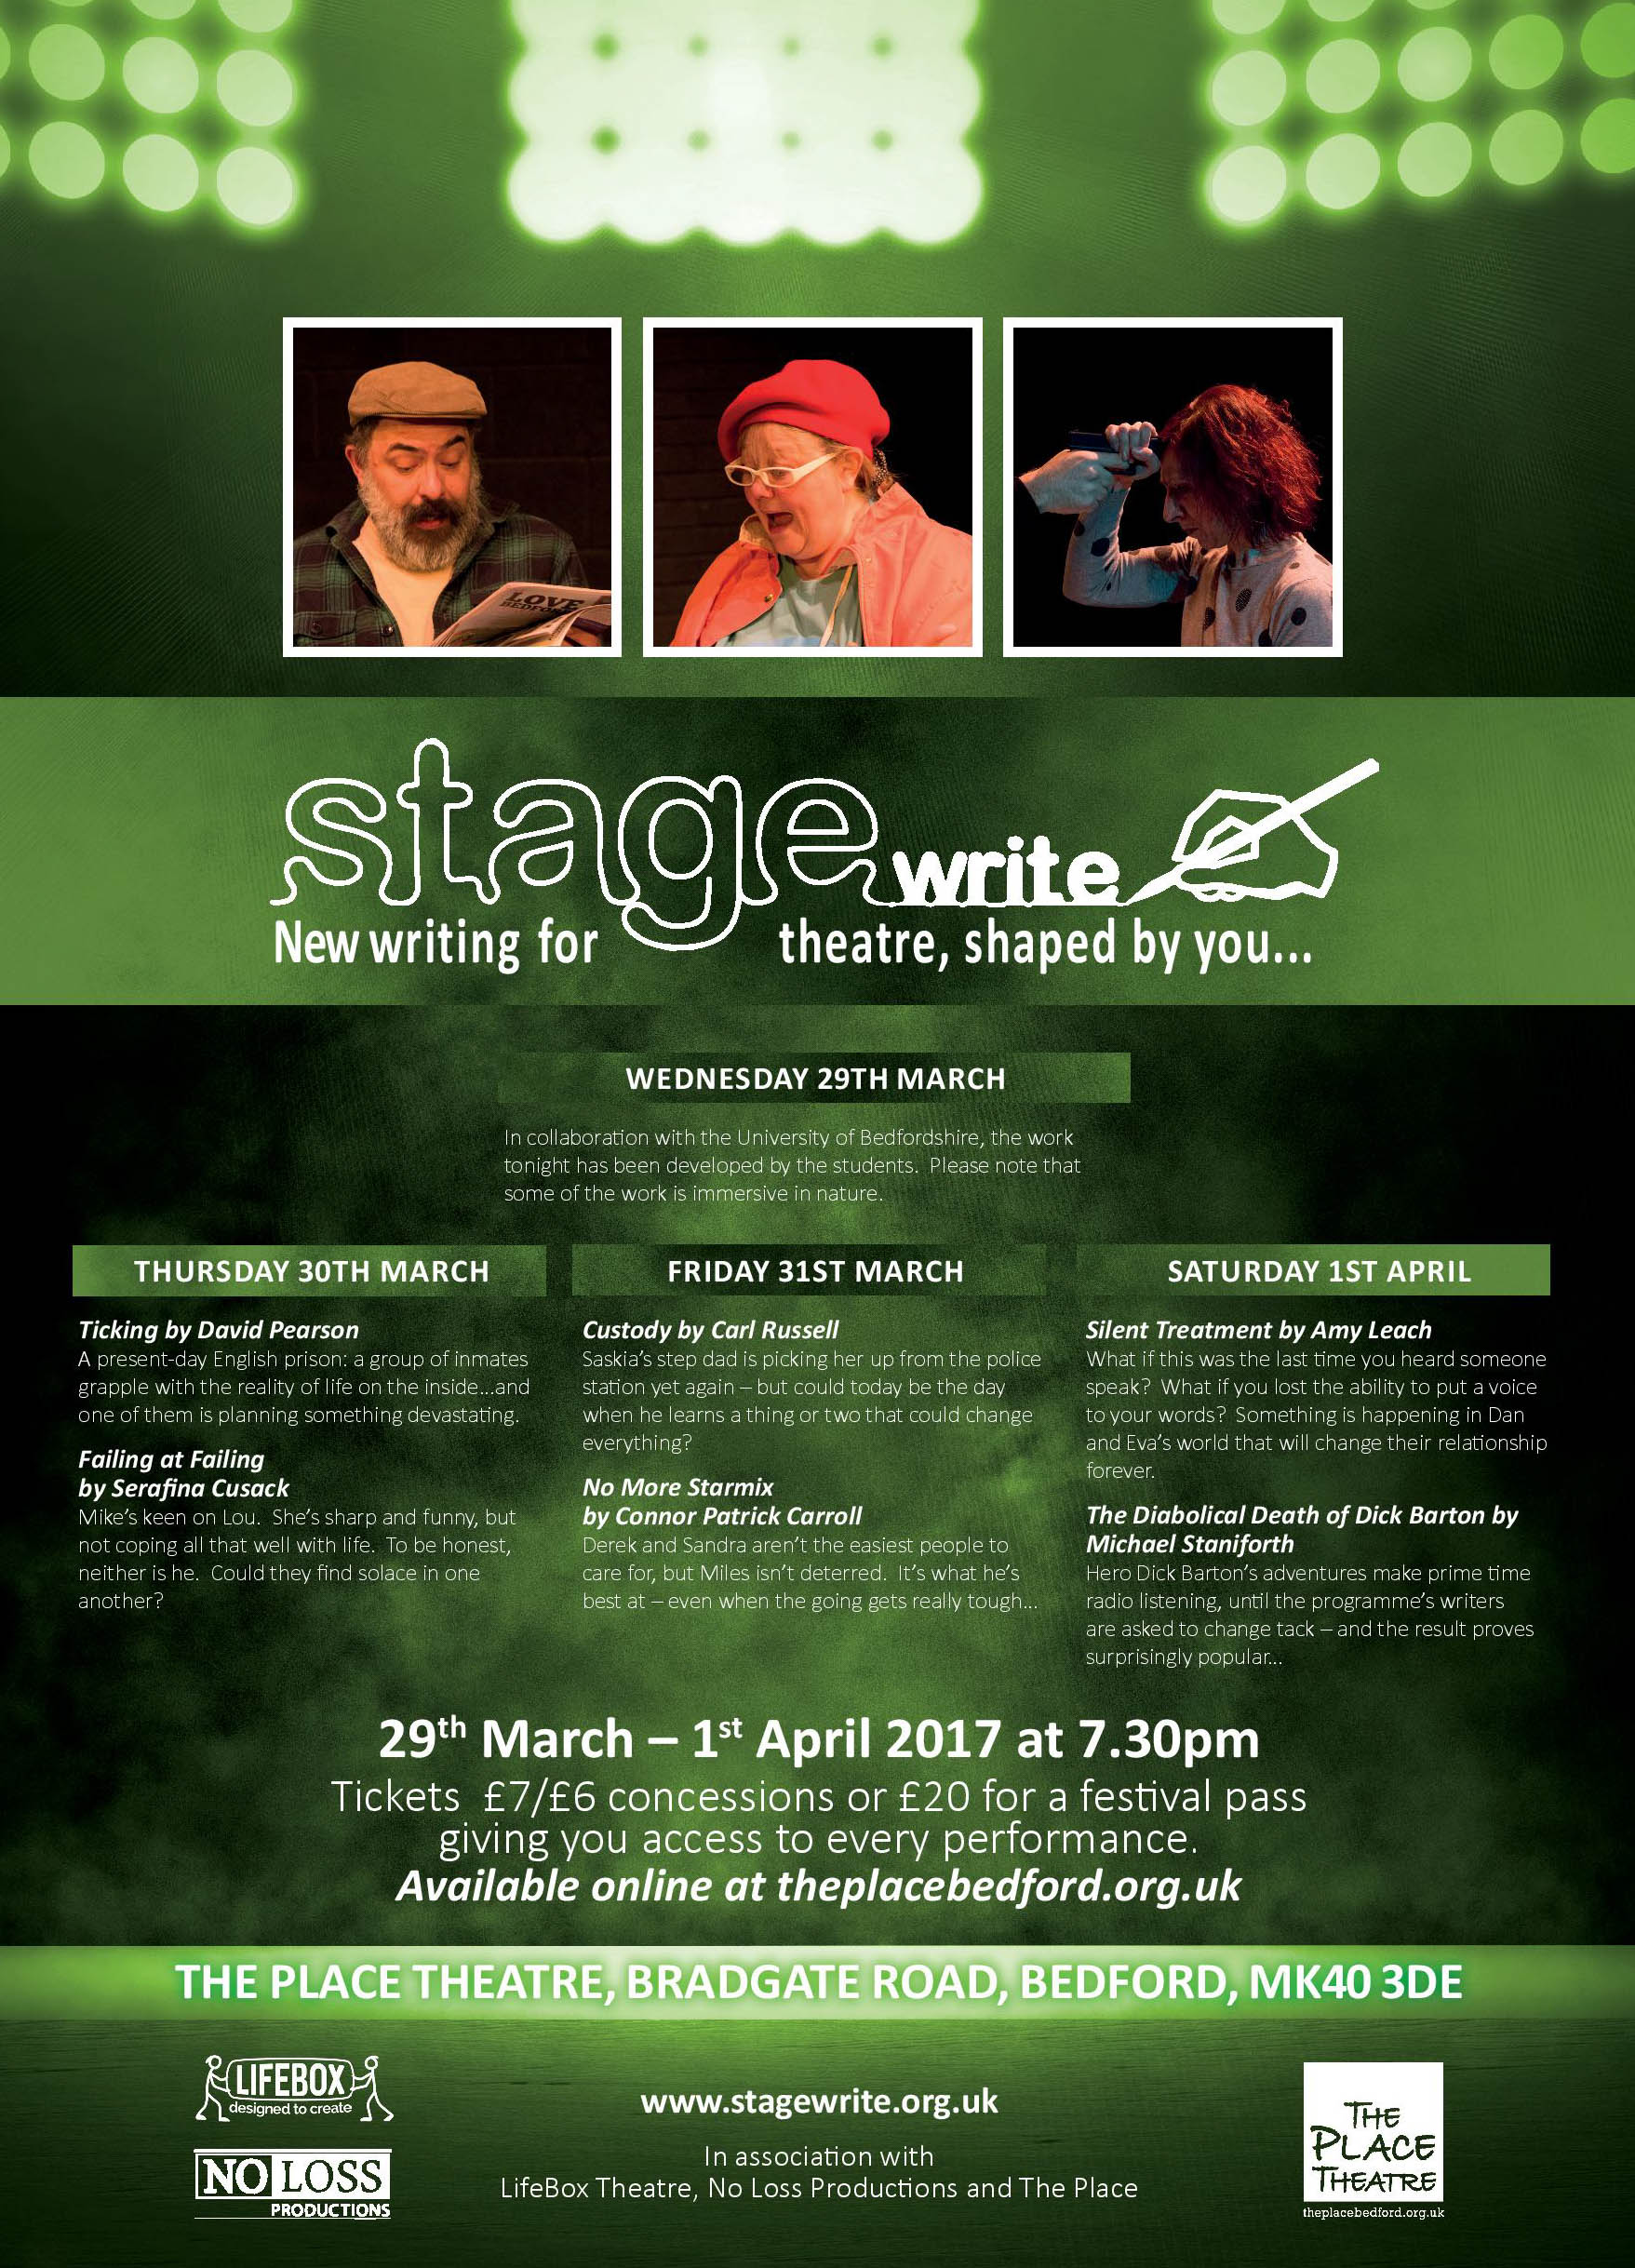 A0250_StageWrite_A3_poster_v4_PR-page-001